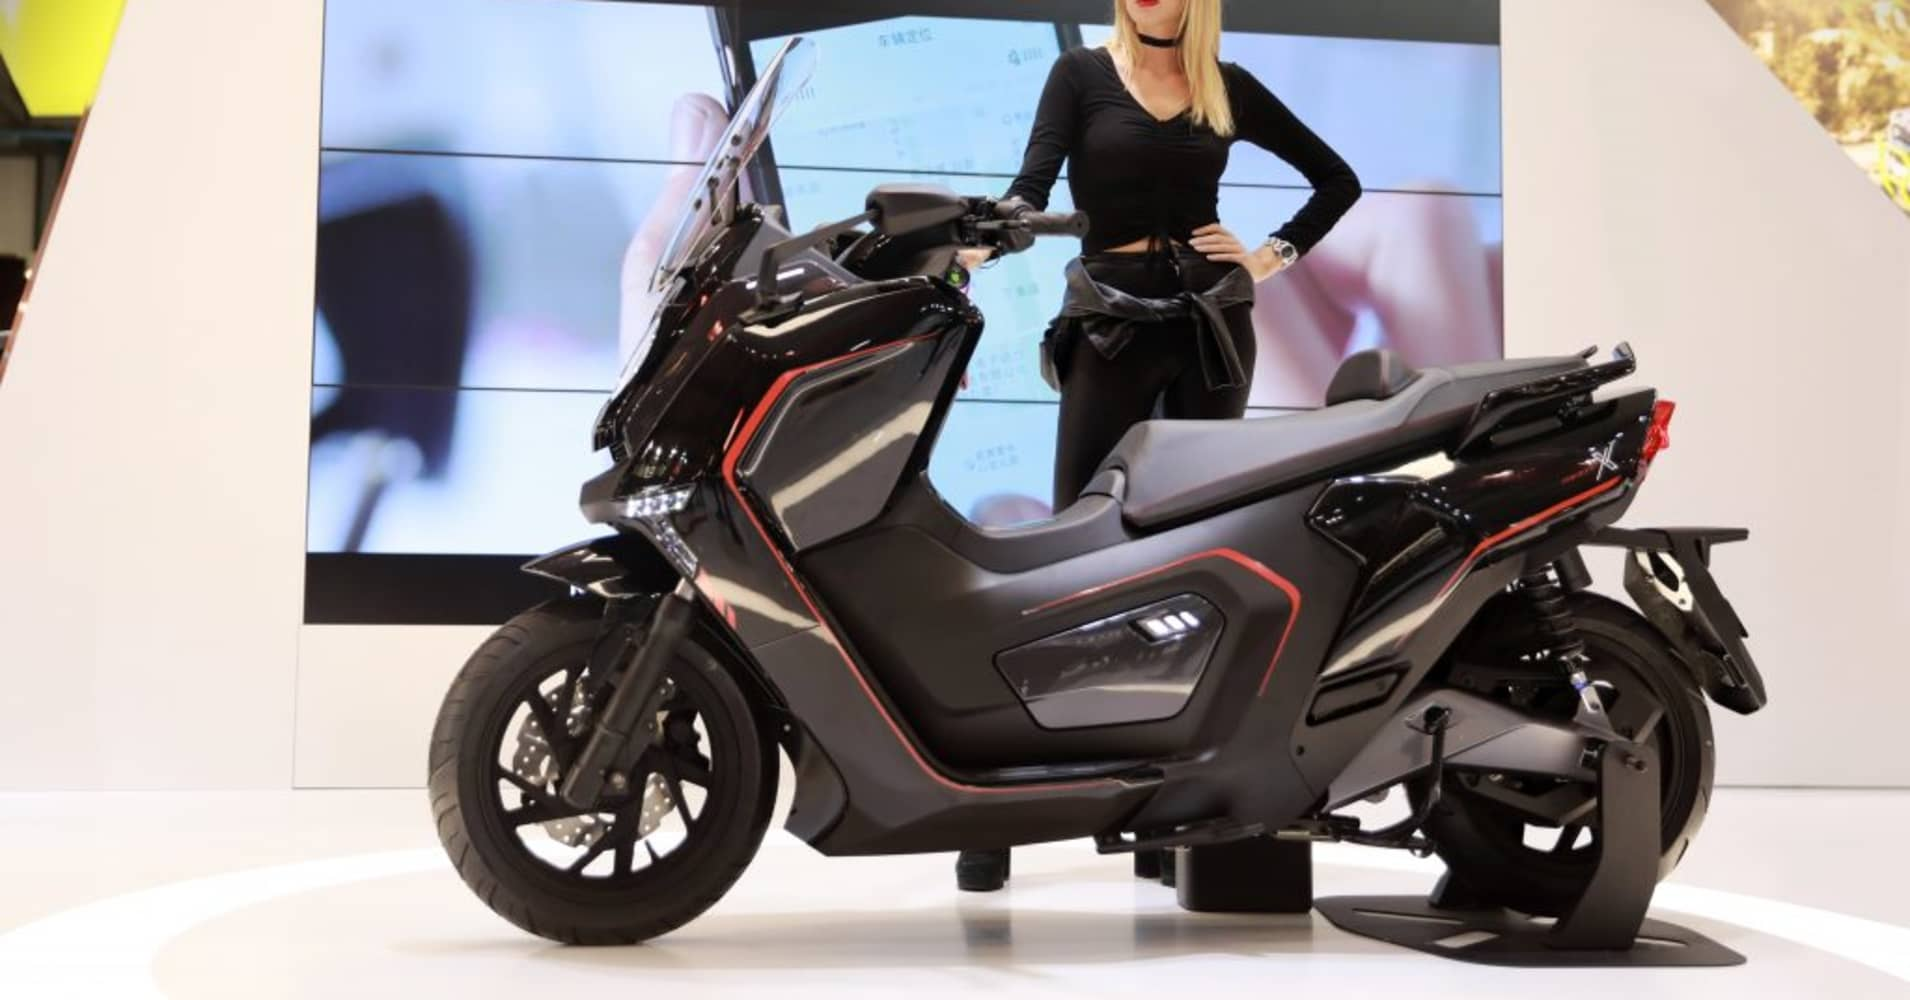 Scooter firm Niu to benefit as China bets big on electric vehicles